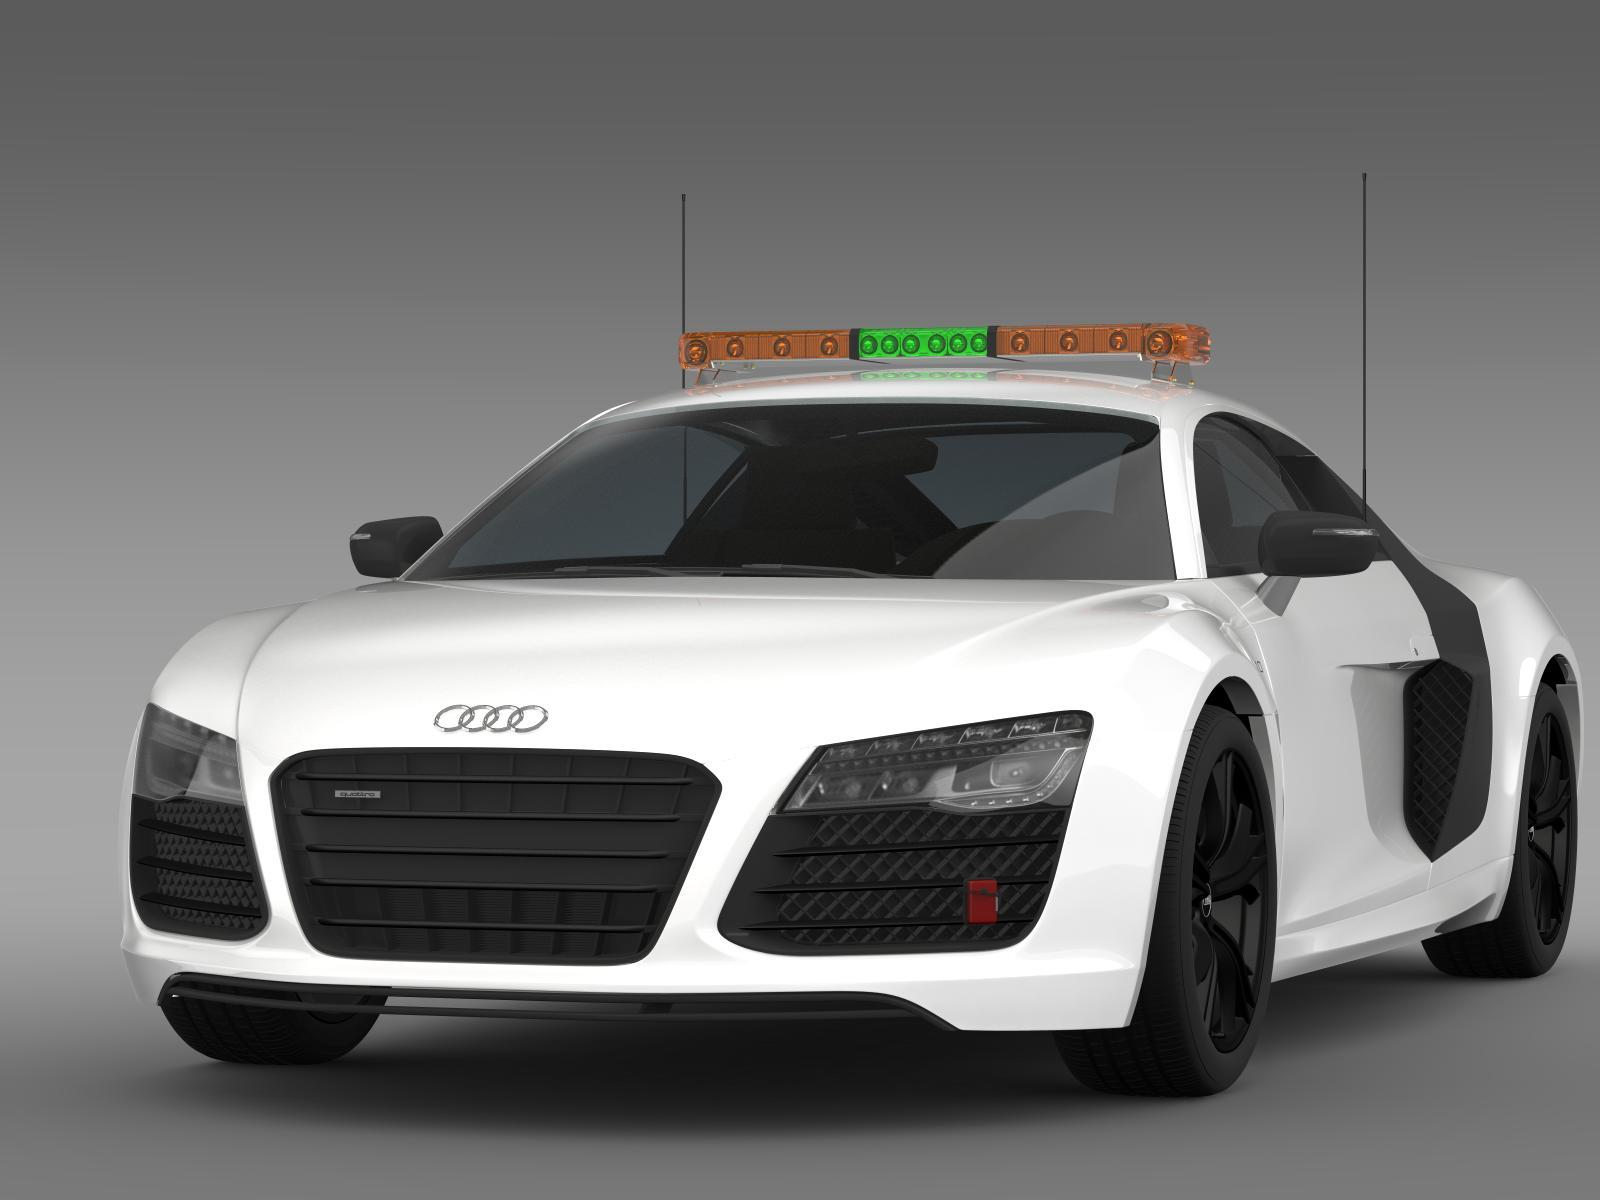 Audi R Vplus Safety Car By Creatord DOcean - Audi car 3d image